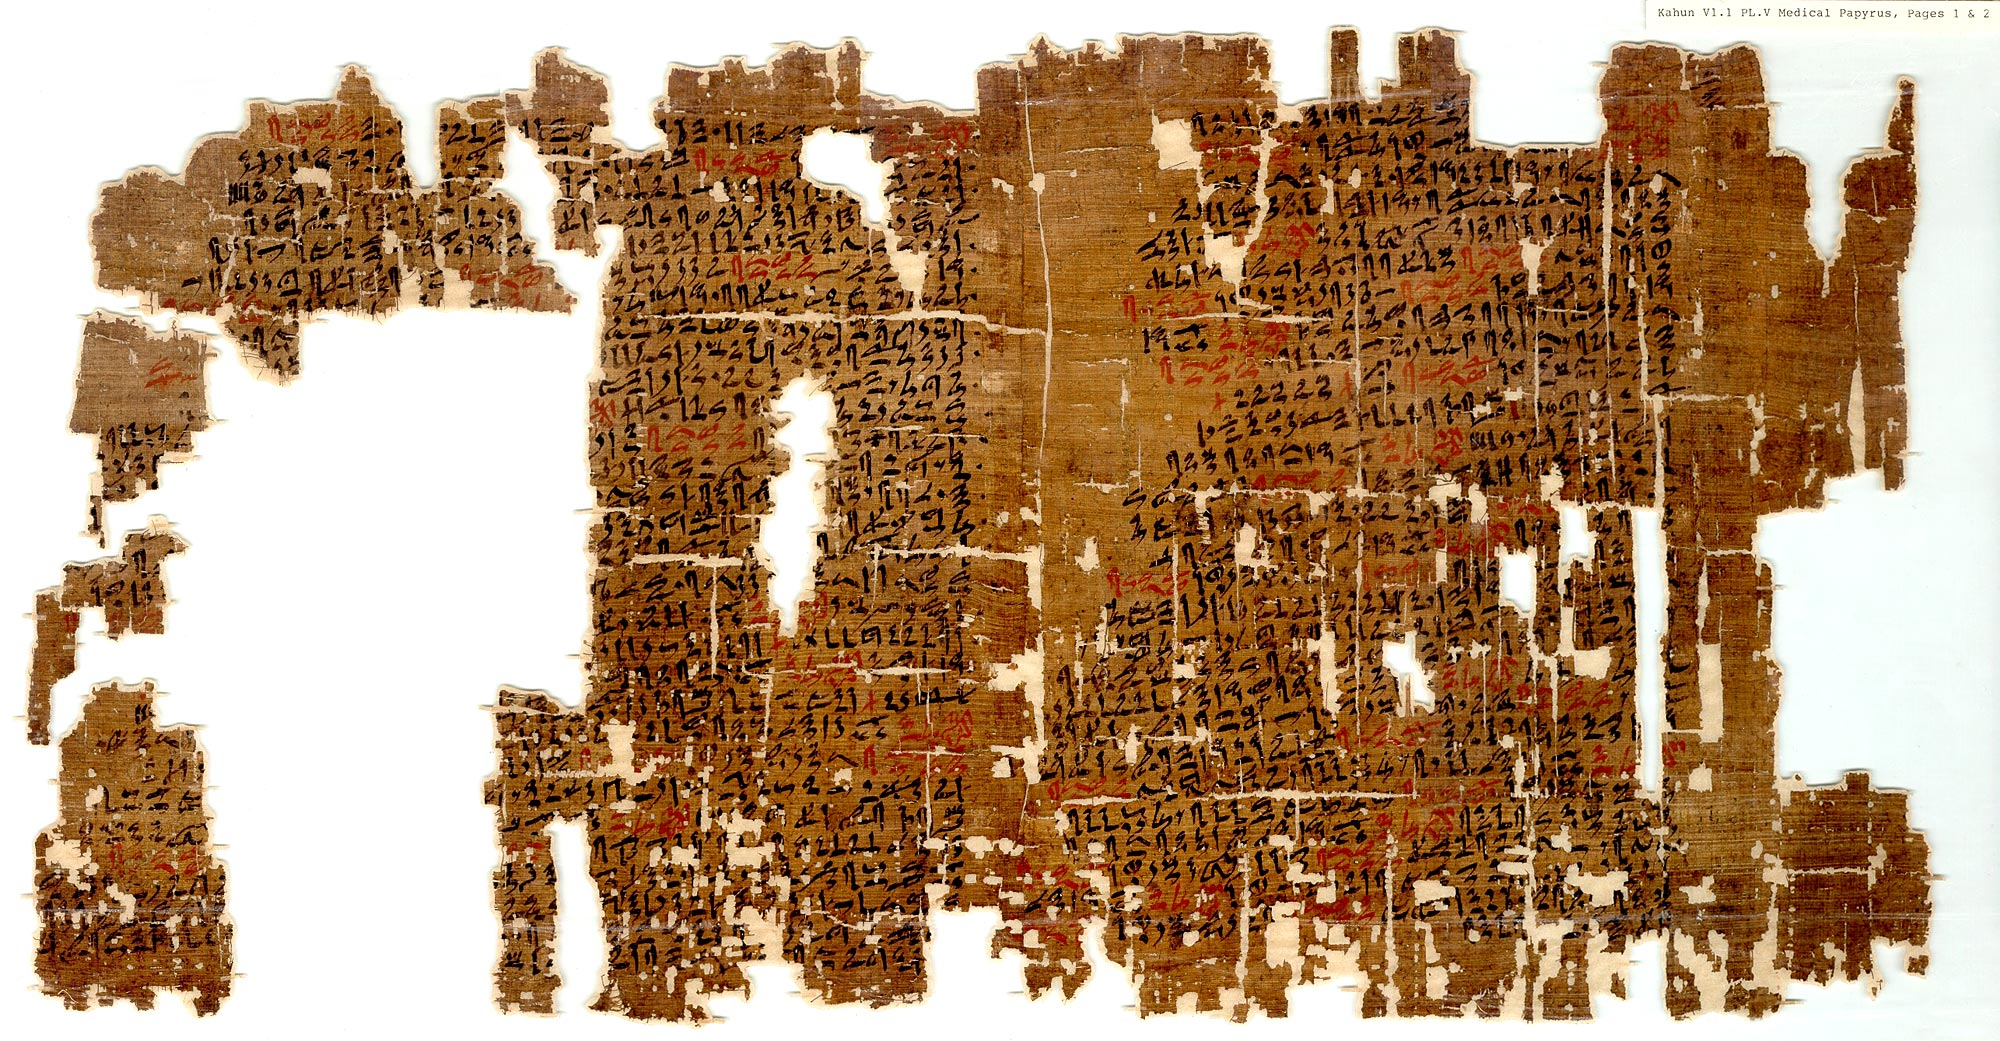 a photo of a papyrus in fragments